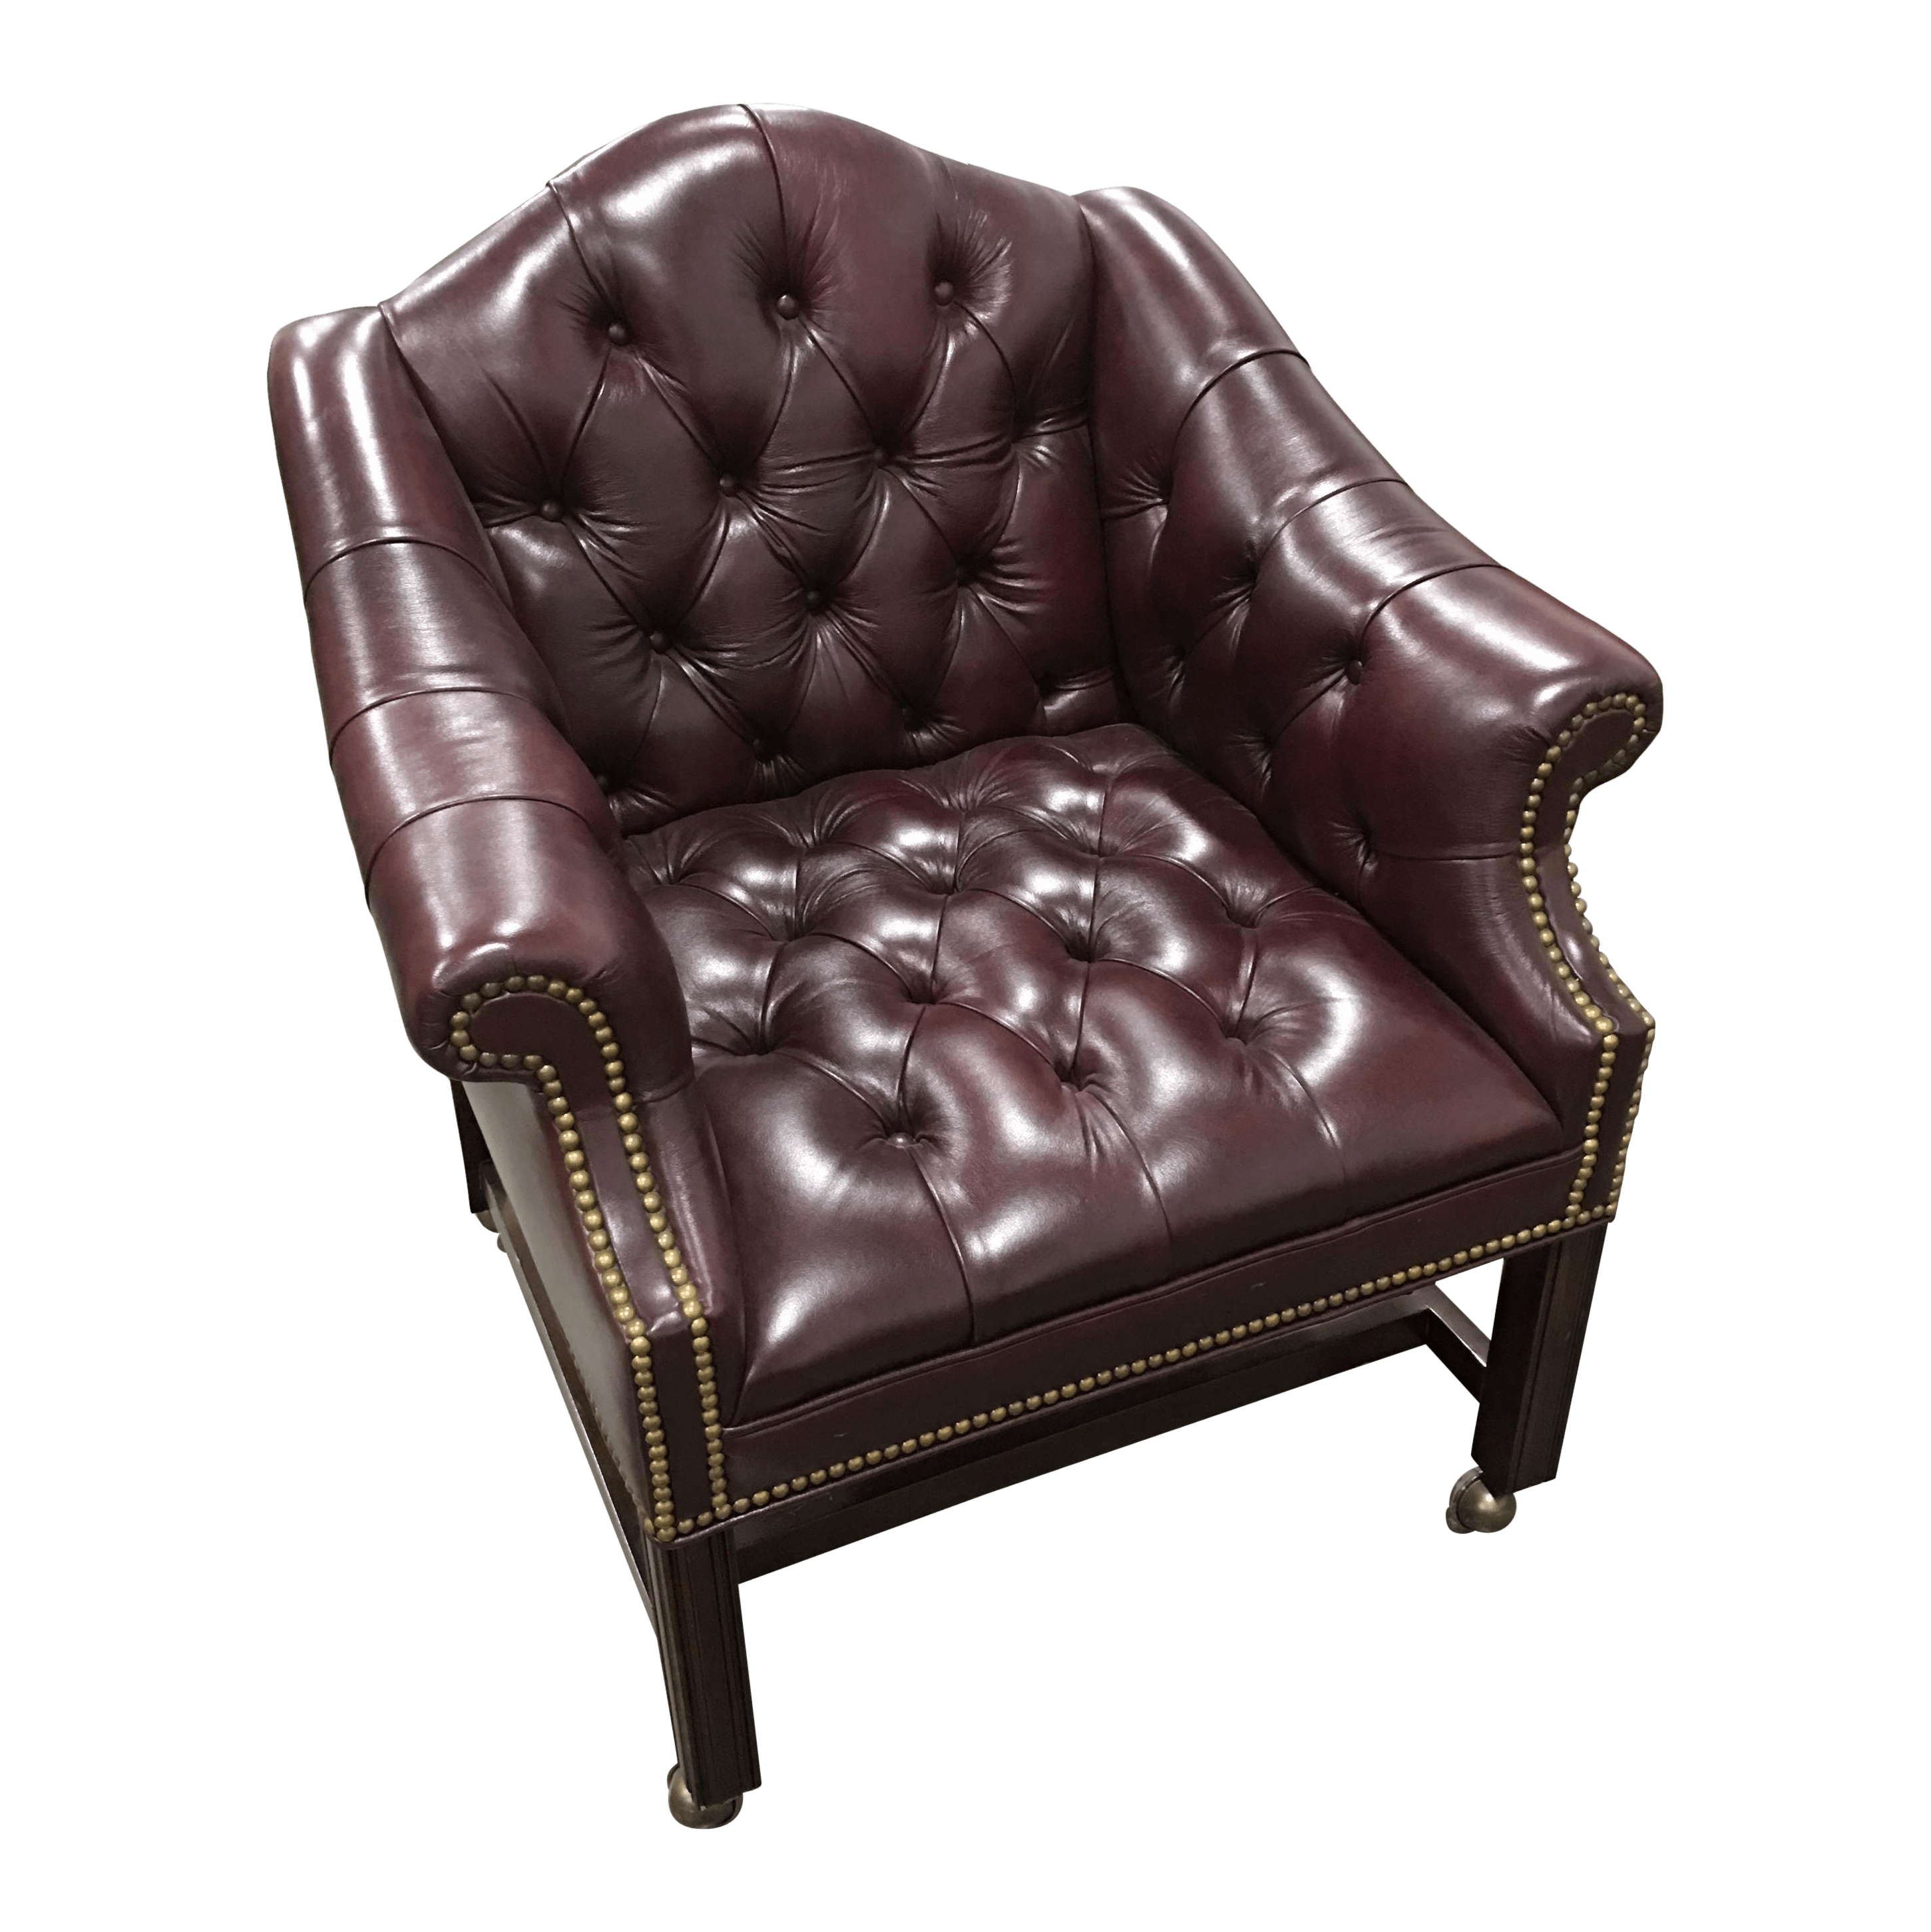 Leathercraft Burgundy Leather Desk Chair on Wheels  Chairish